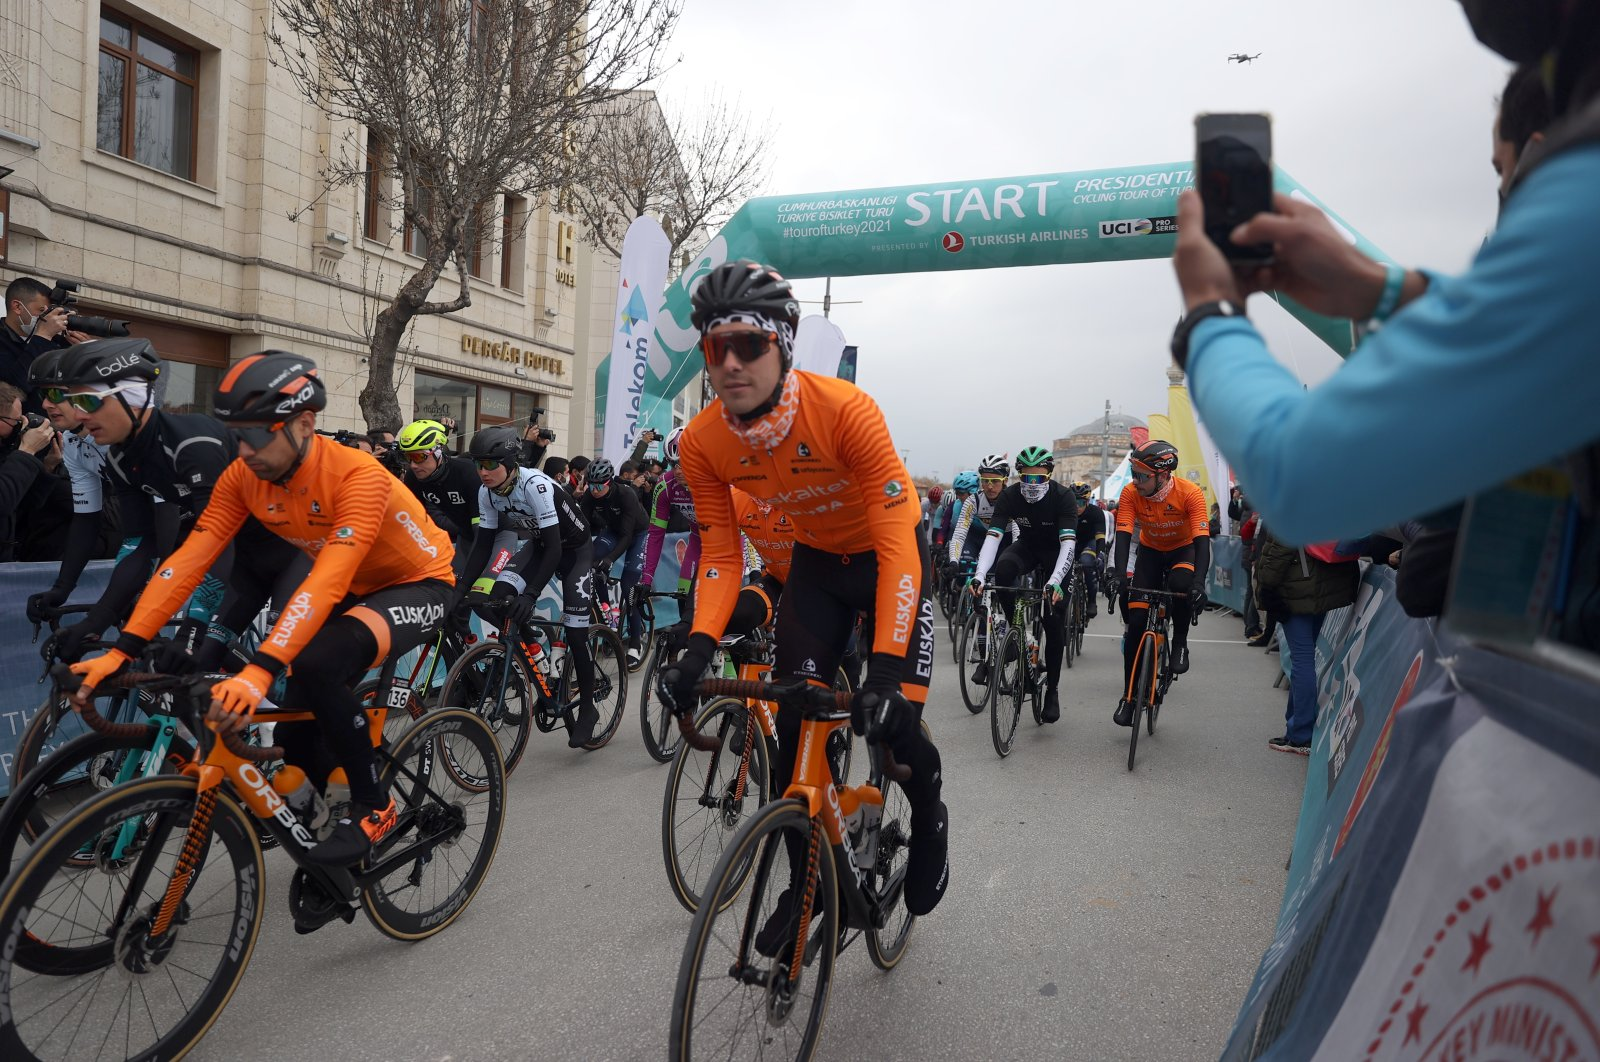 Riders at the start line of the 56th Presidential Cycling Tour of Turkey at Mevlana Square, Konya, central Turkey, April 11, 2021.